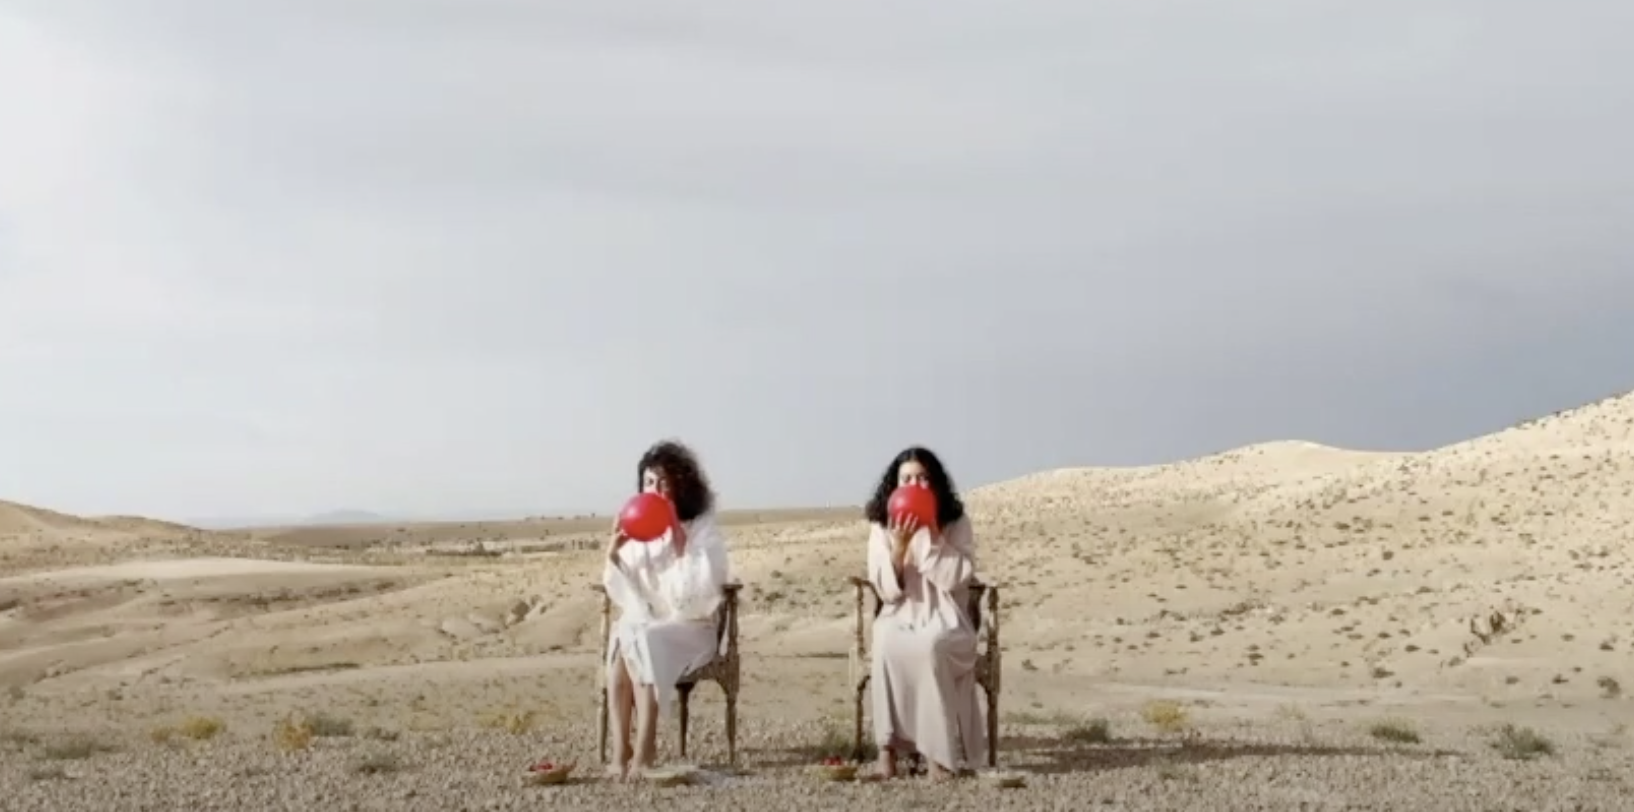 Two women sitting on chairs in the desert